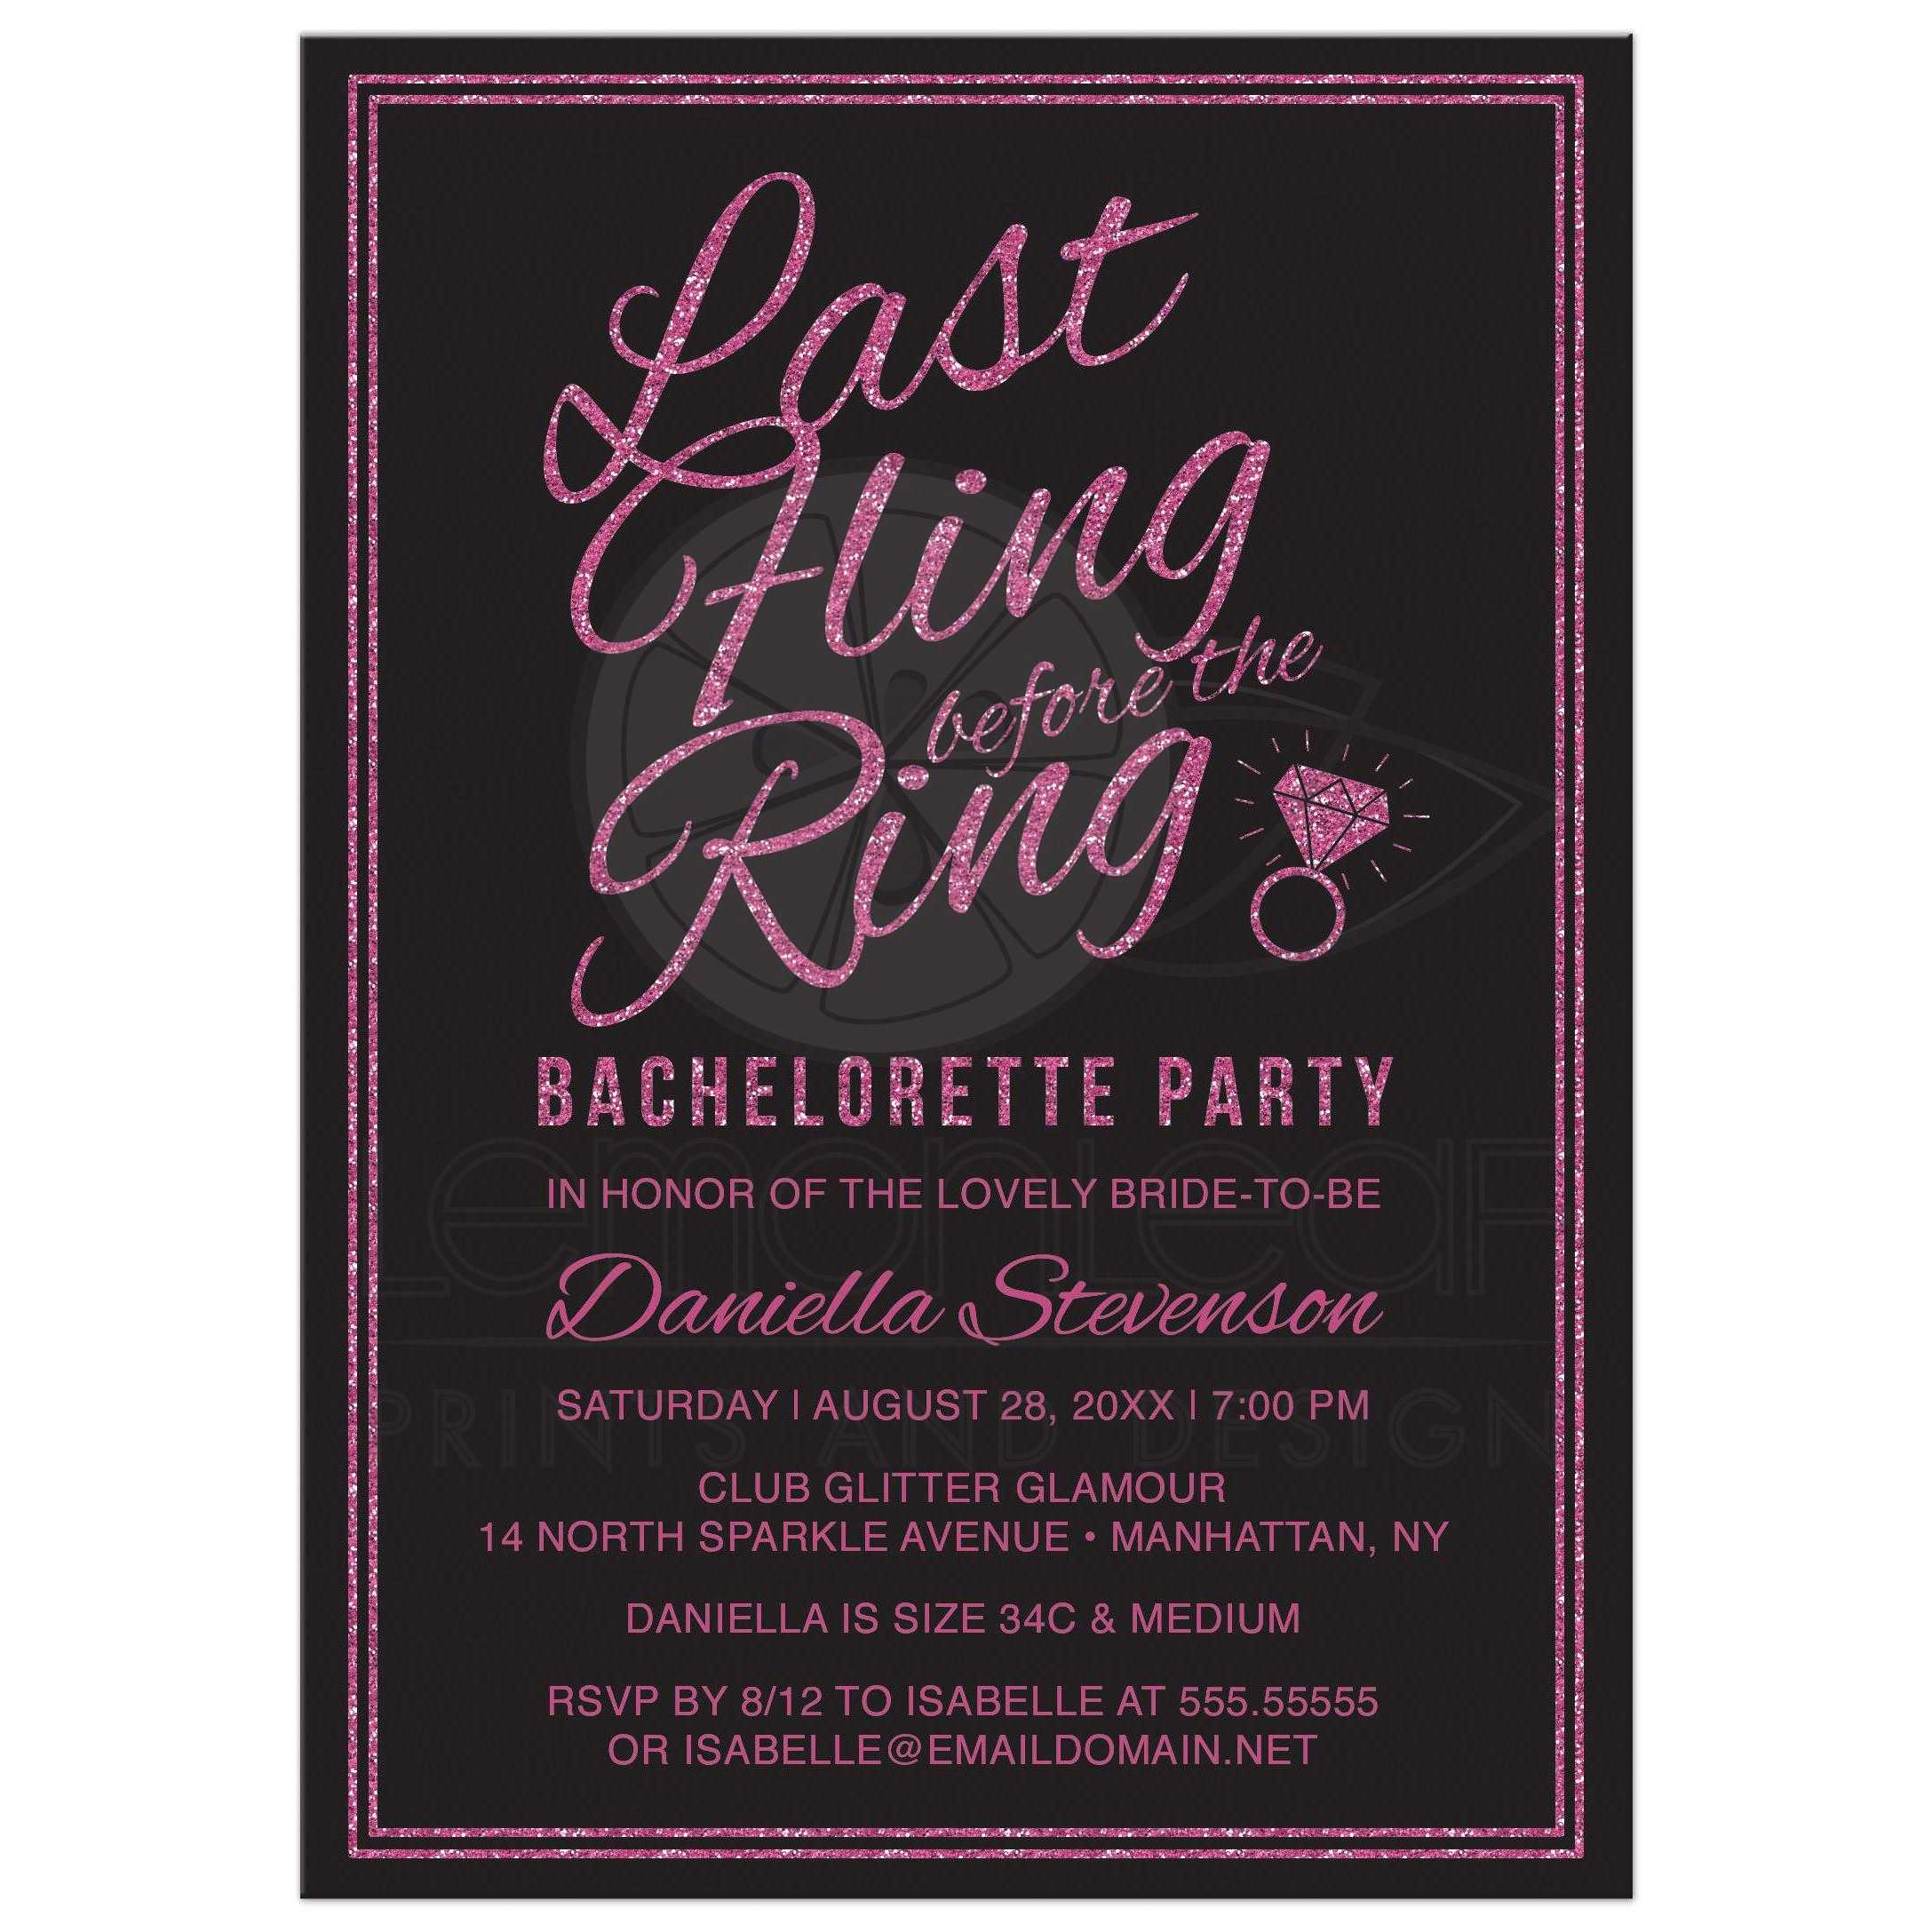 Glitter Look Last Fling Before The Ring Bachelorette Party Invitations Front